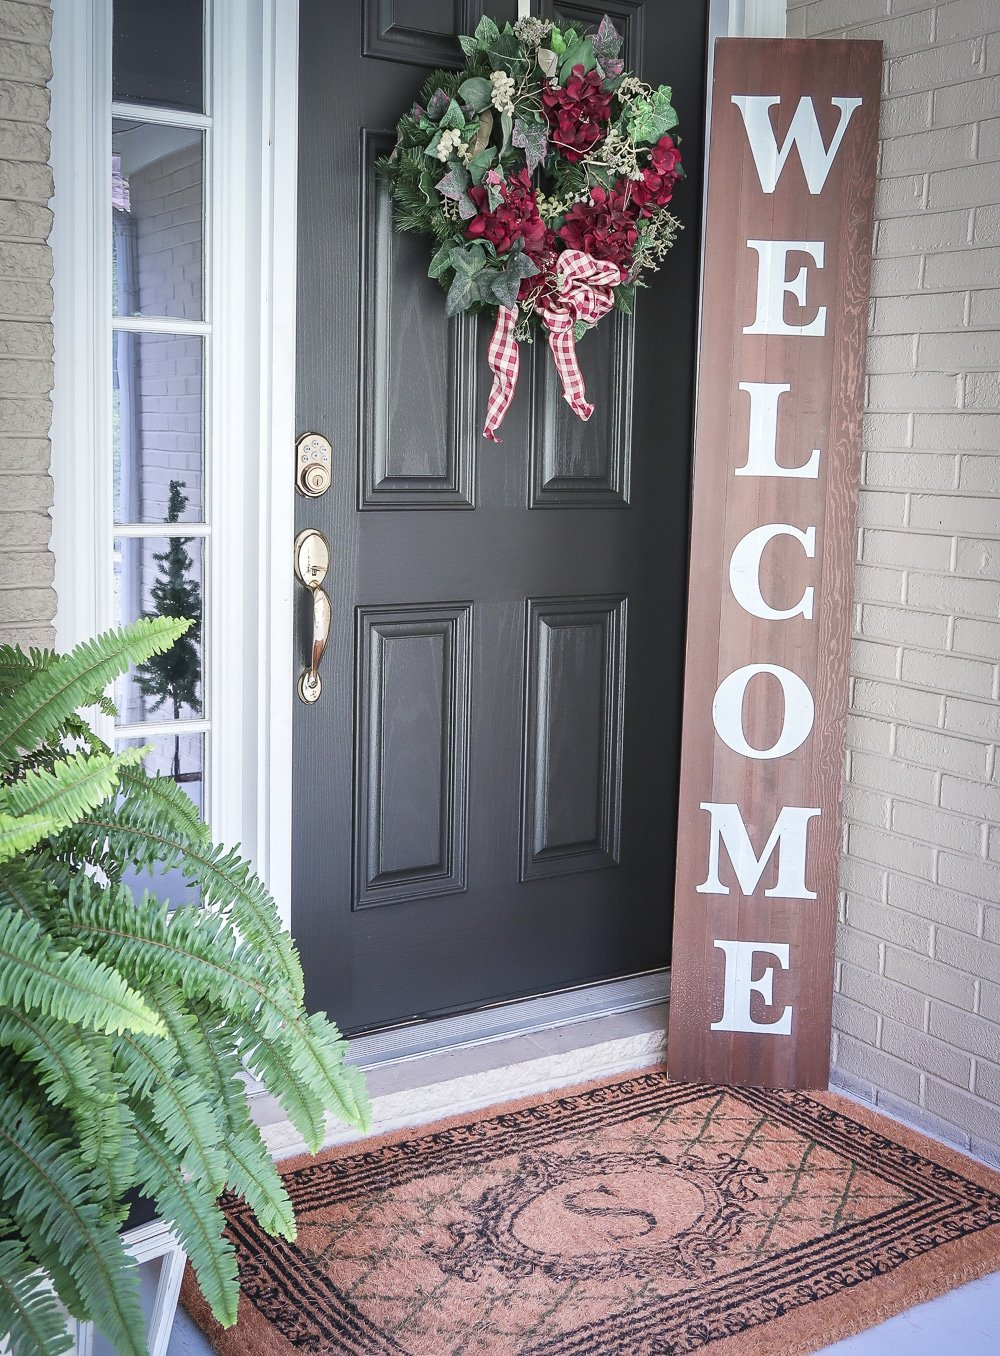 Fashion Blogger 50 Is Not Old is showing a black front door with a wreath and a Welcome sign